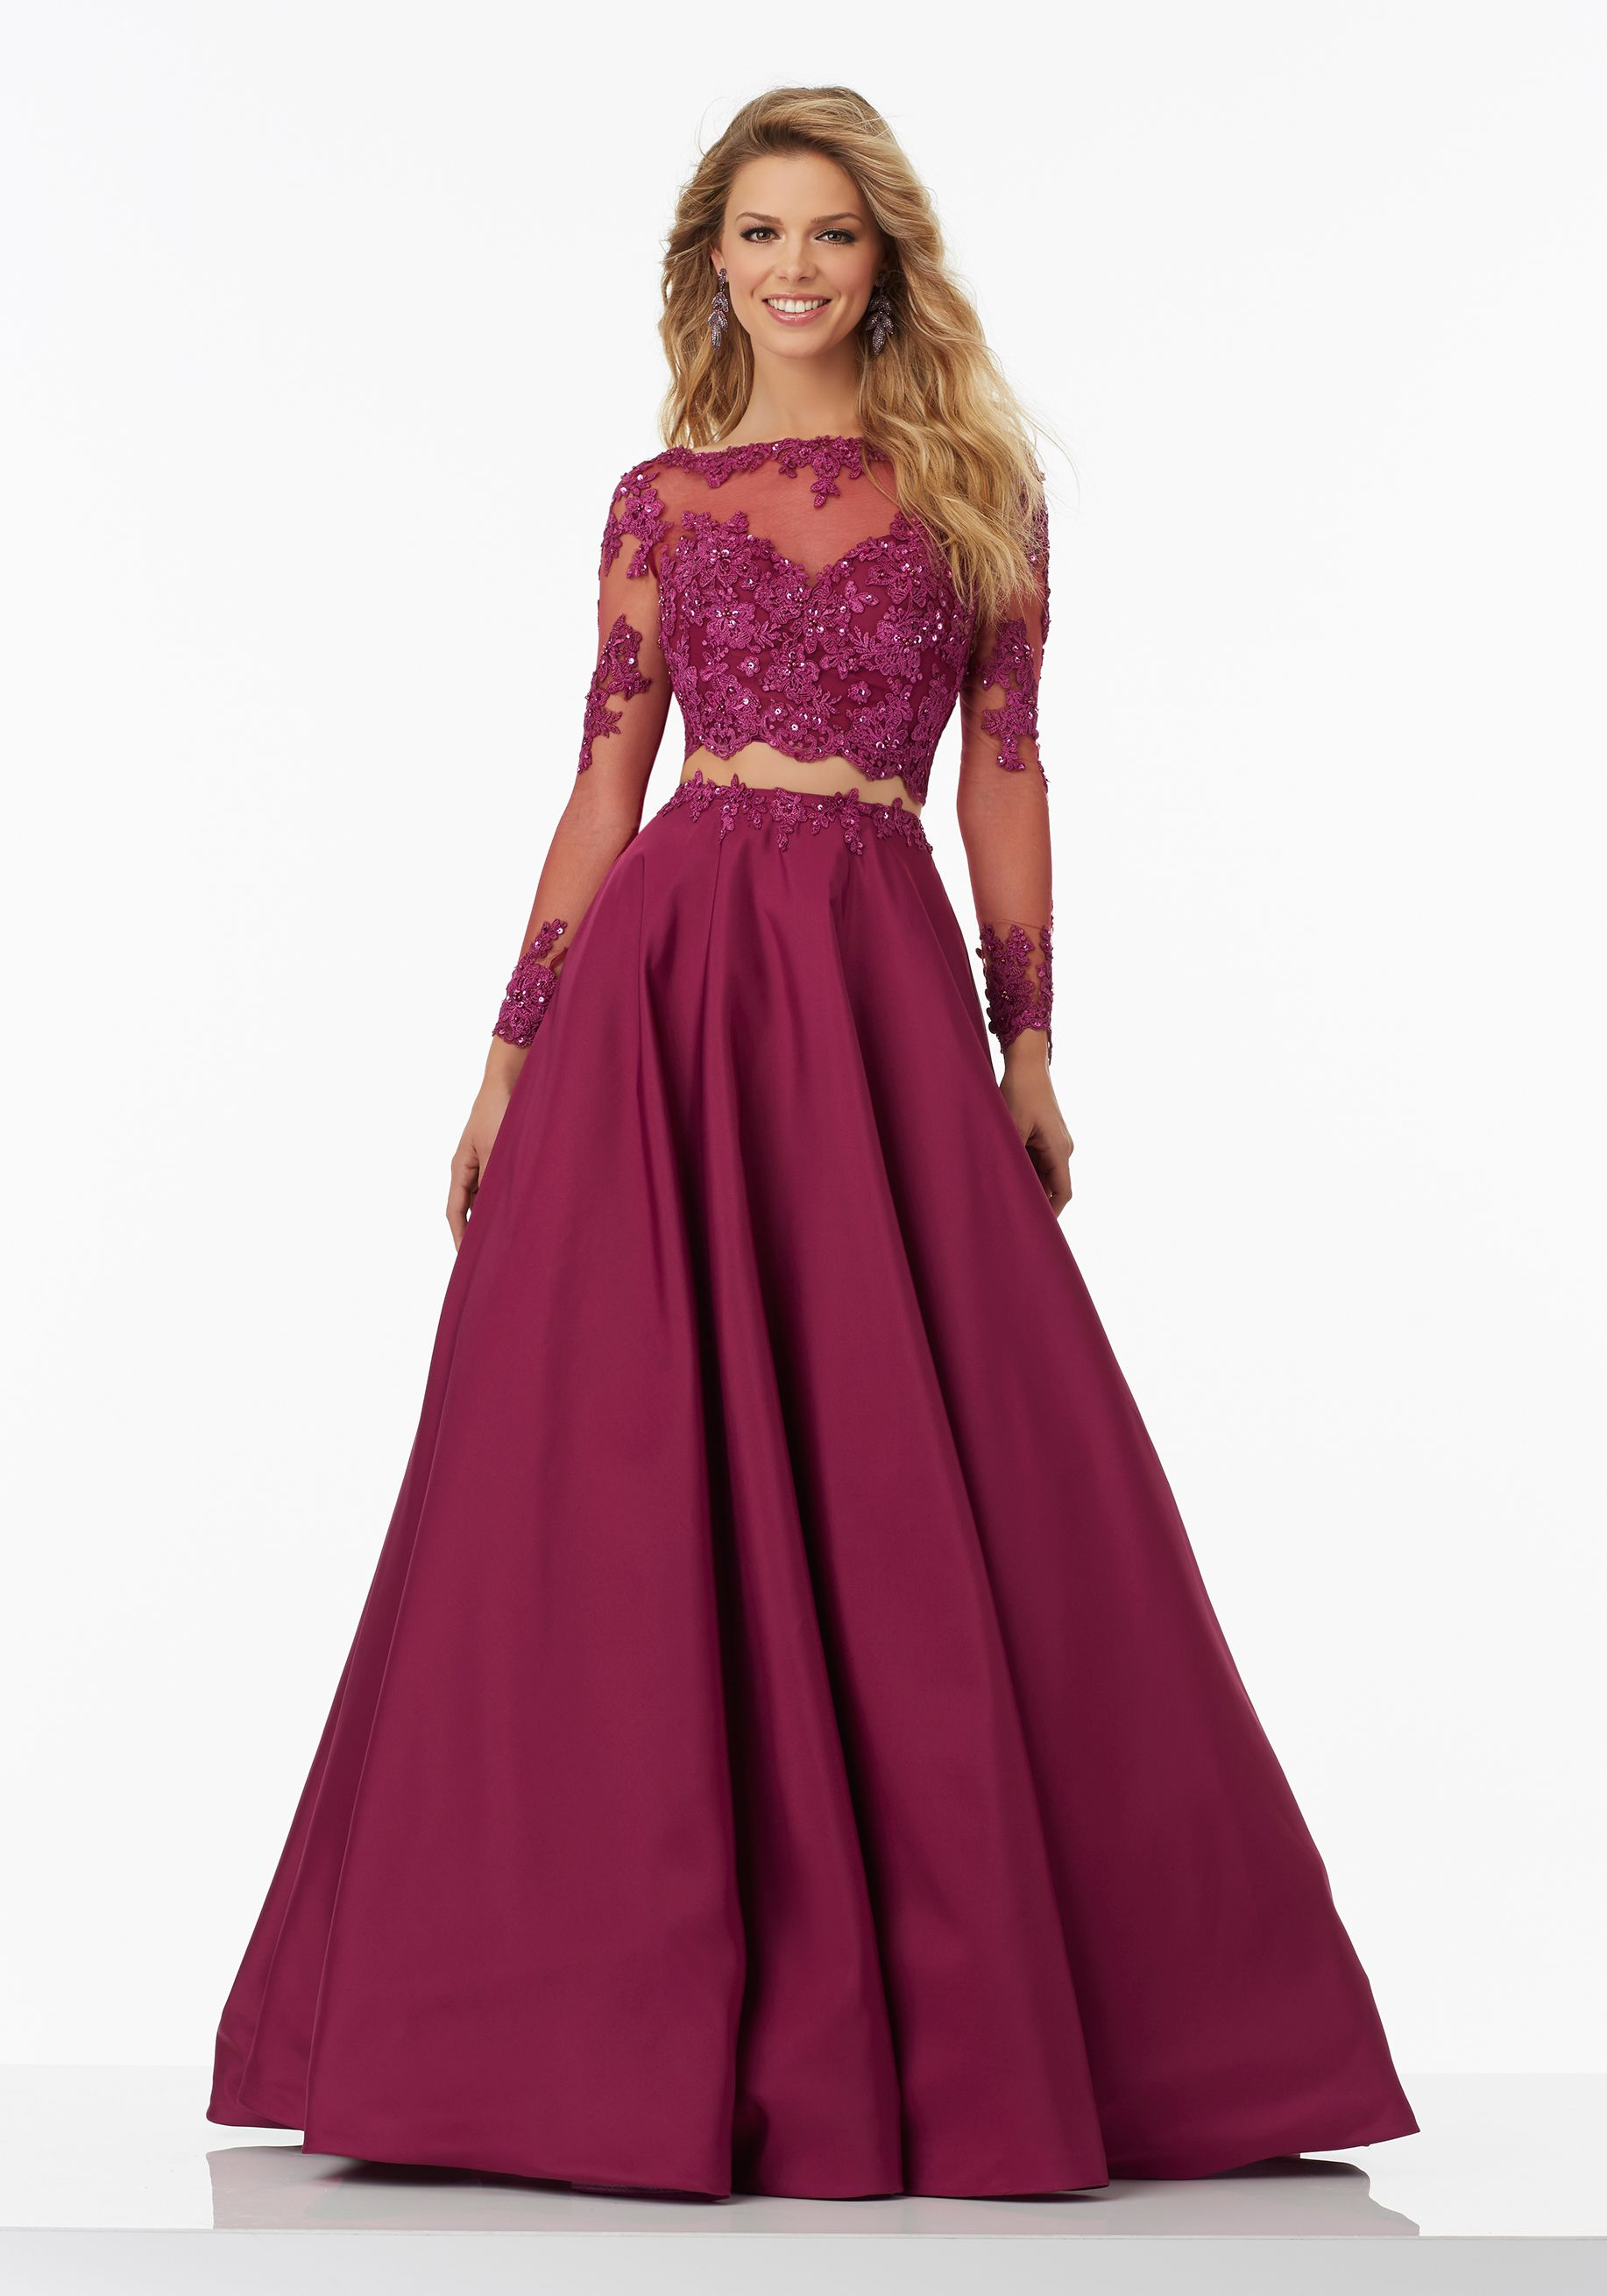 Two Piece Prom Dress With Long Sleeved Lace On Net Top And